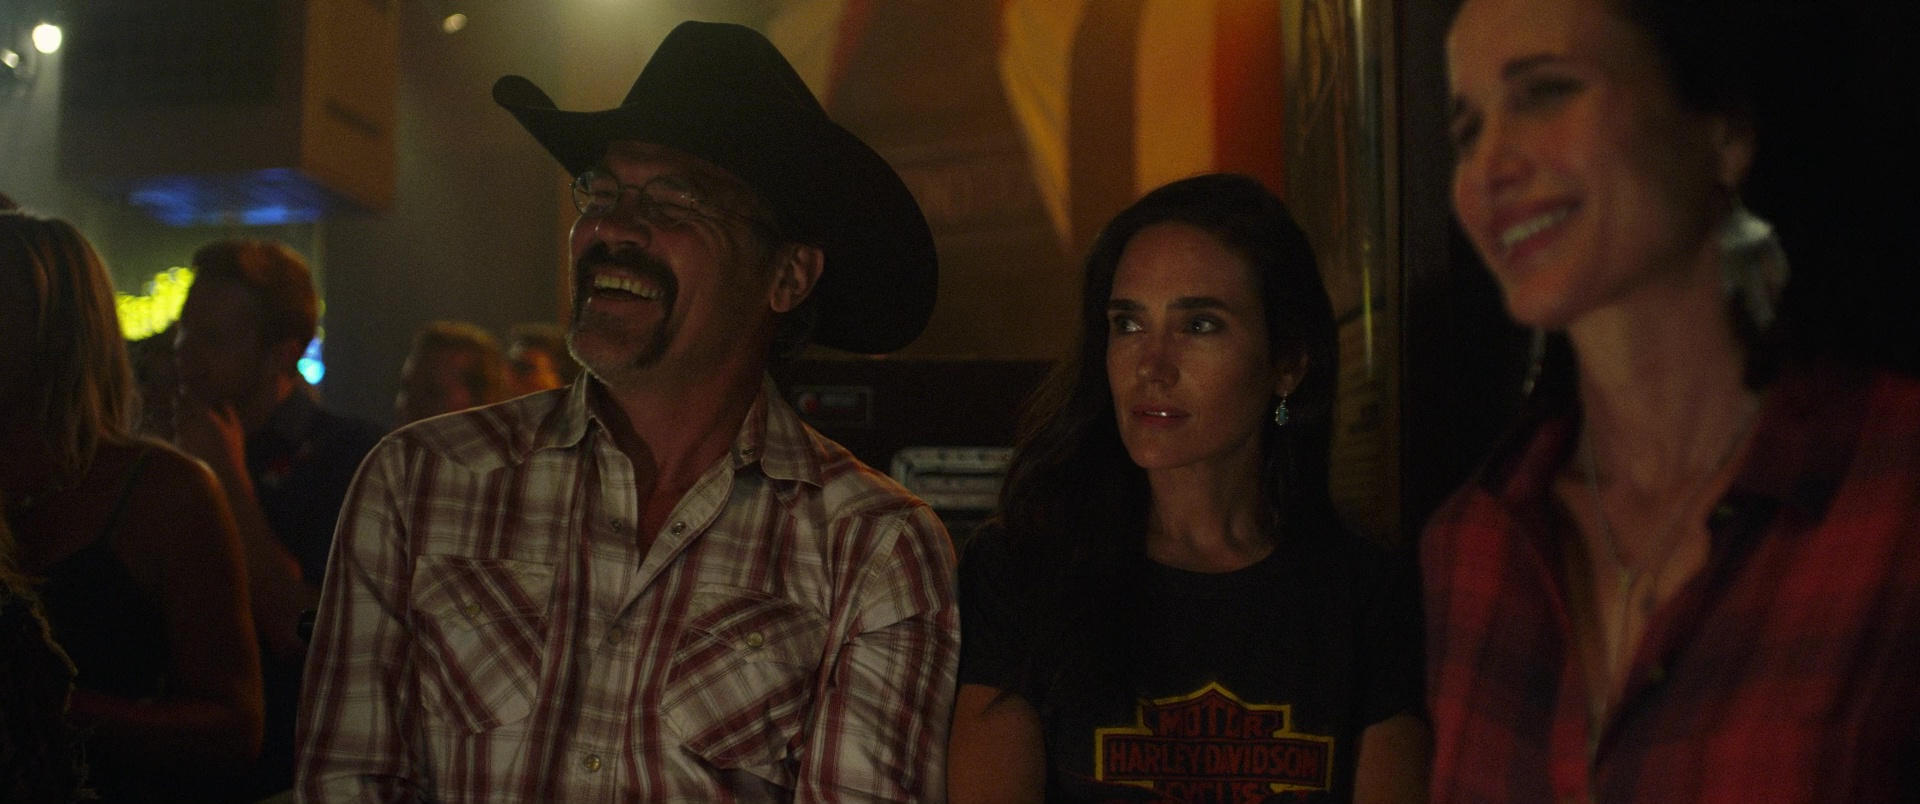 Harley-Davidson T-Shirt Worn by Jennifer Connelly in Only